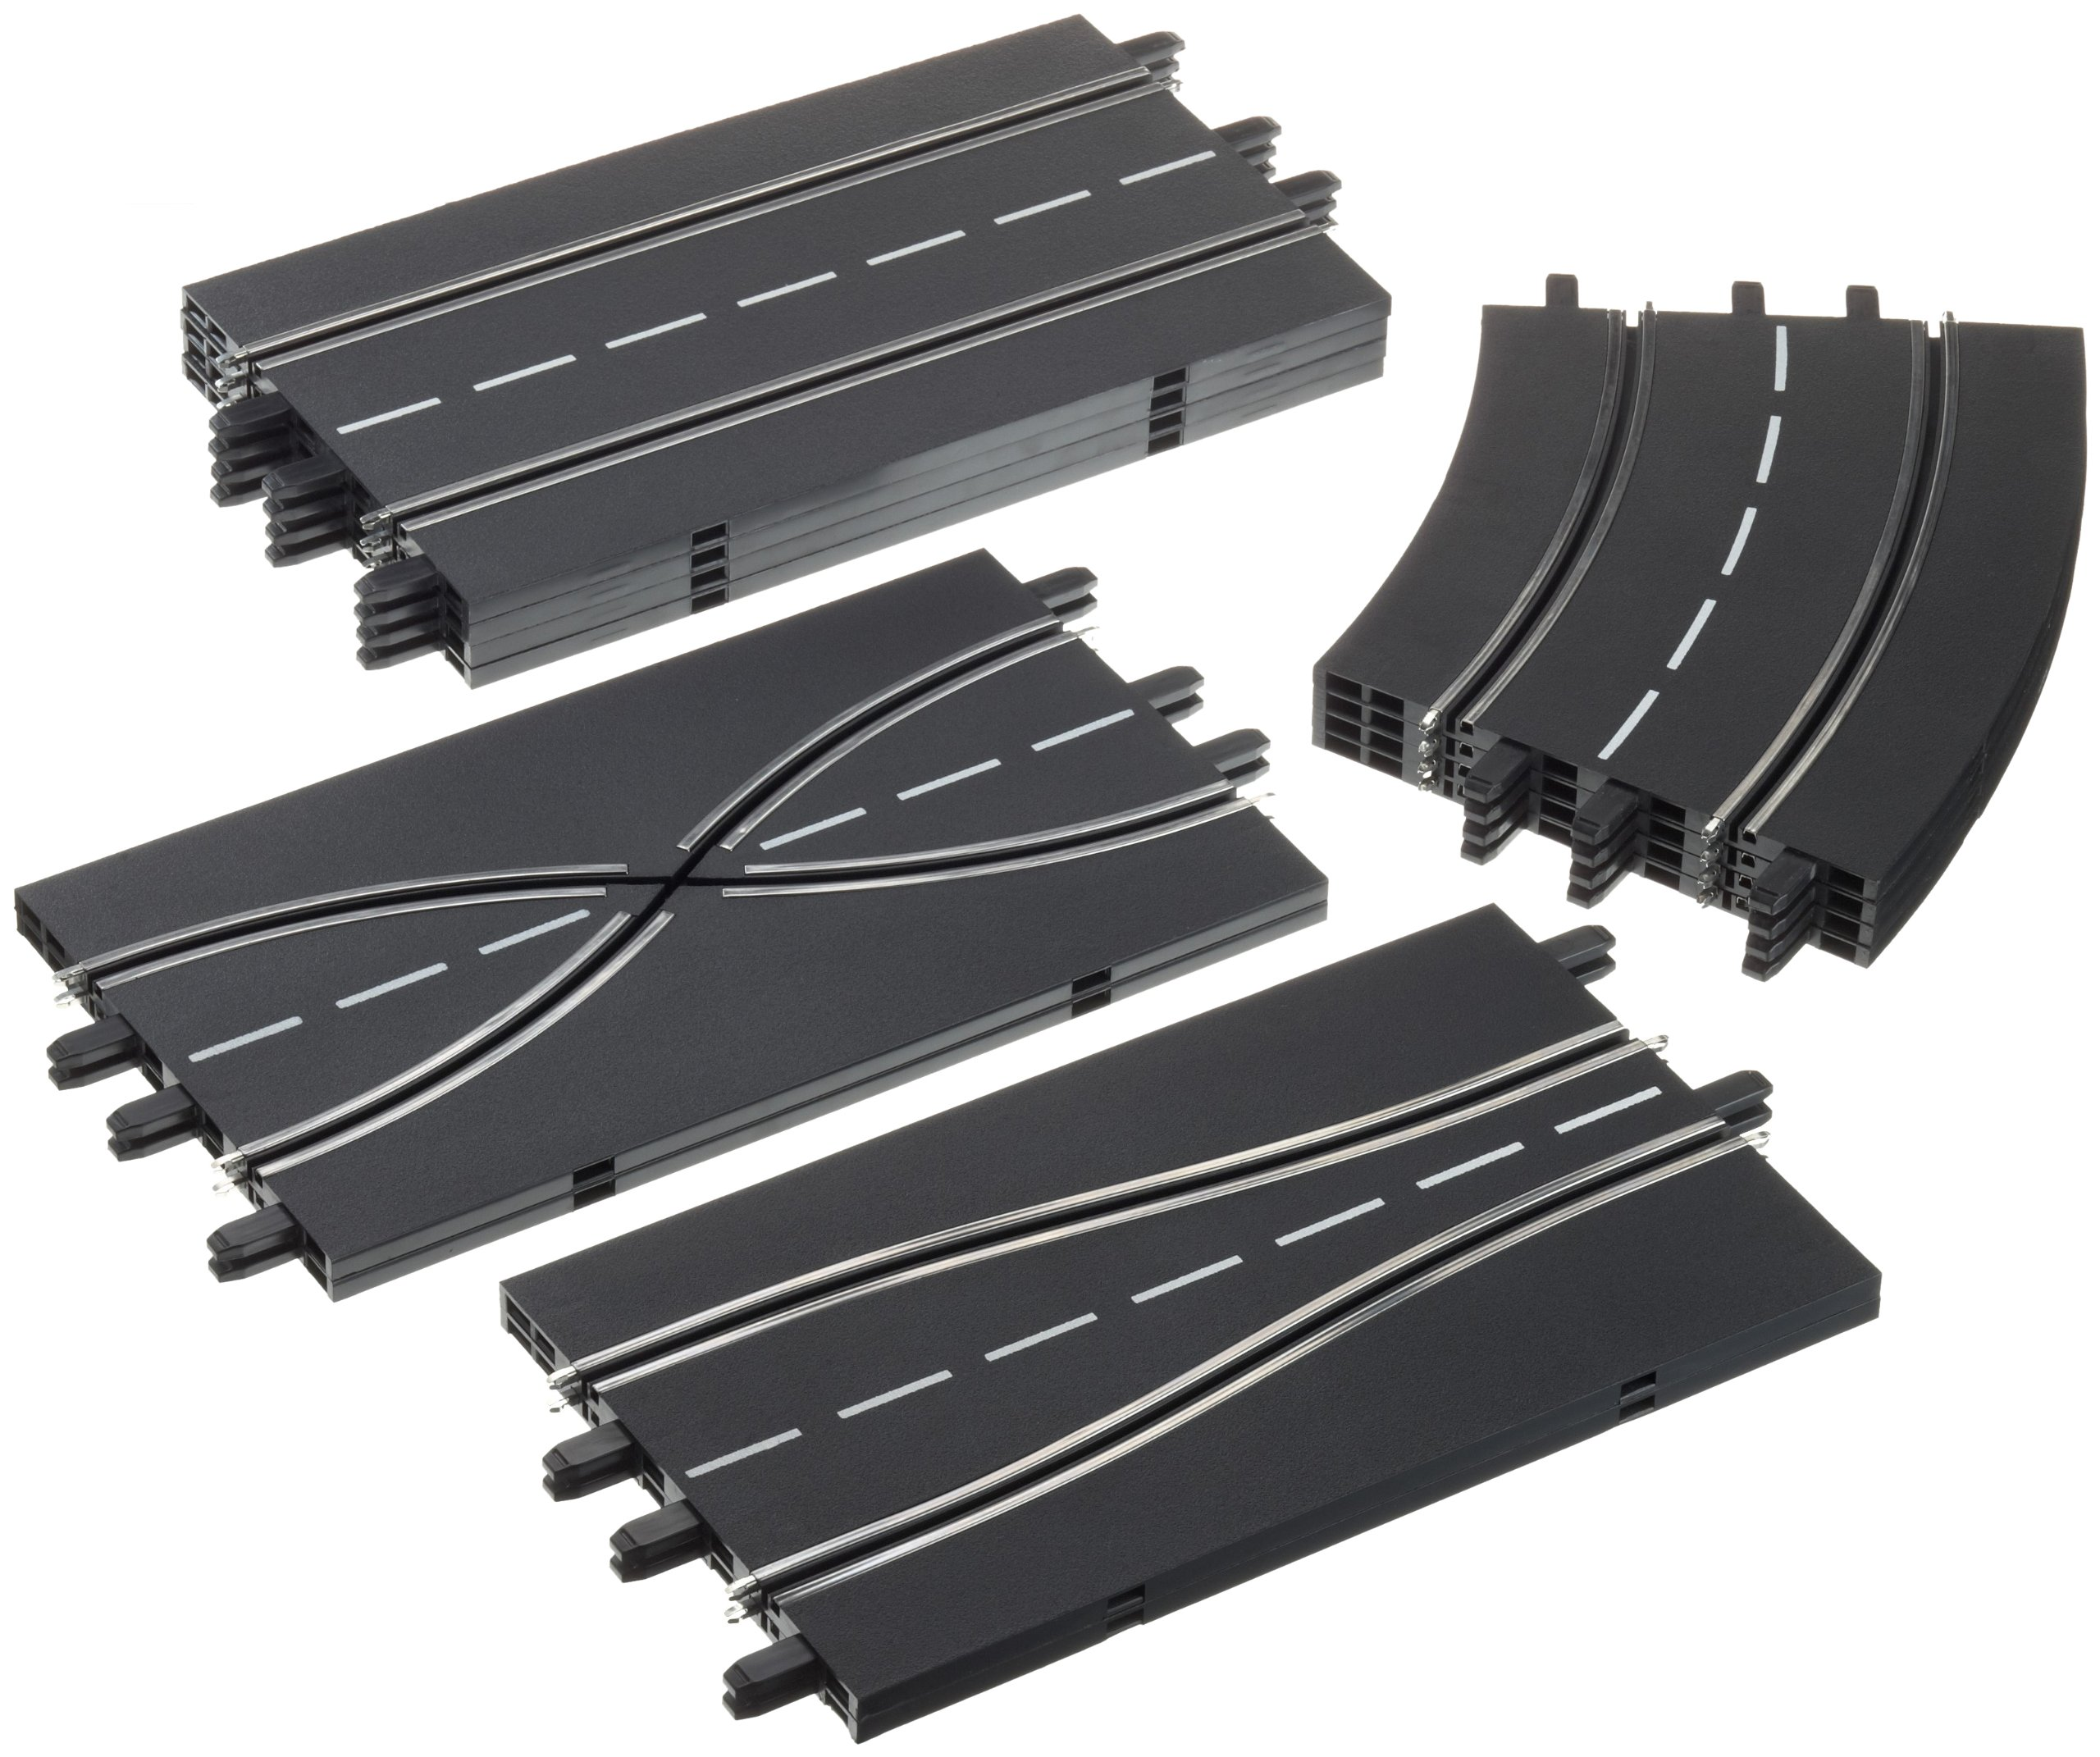 Carrera 1:24 Scale Track Extension Set - Accessory Pack includes 12 Pieces - For Use With Digital 124, 132 and Evolution Carrera Slot Car Racetrack Systems